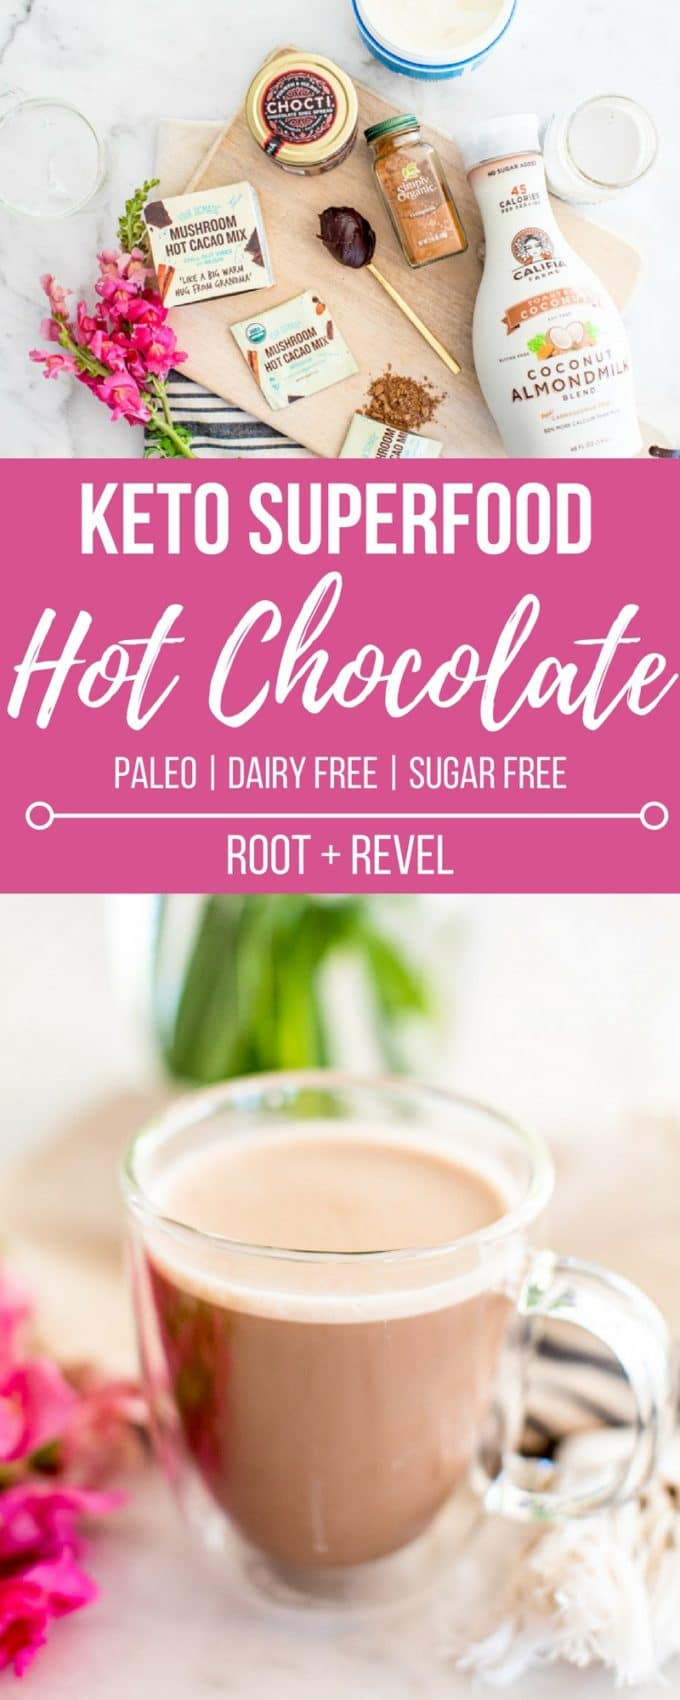 Looking for a Keto Hot Chocolate Recipe? How about one that's homemade, easy to make from a mix, dairy free, Paleo, refined sugar free, chockfull of superfoods, and yet extra thick and creamy and delicious? Healthy hot chocolate to the rescue!